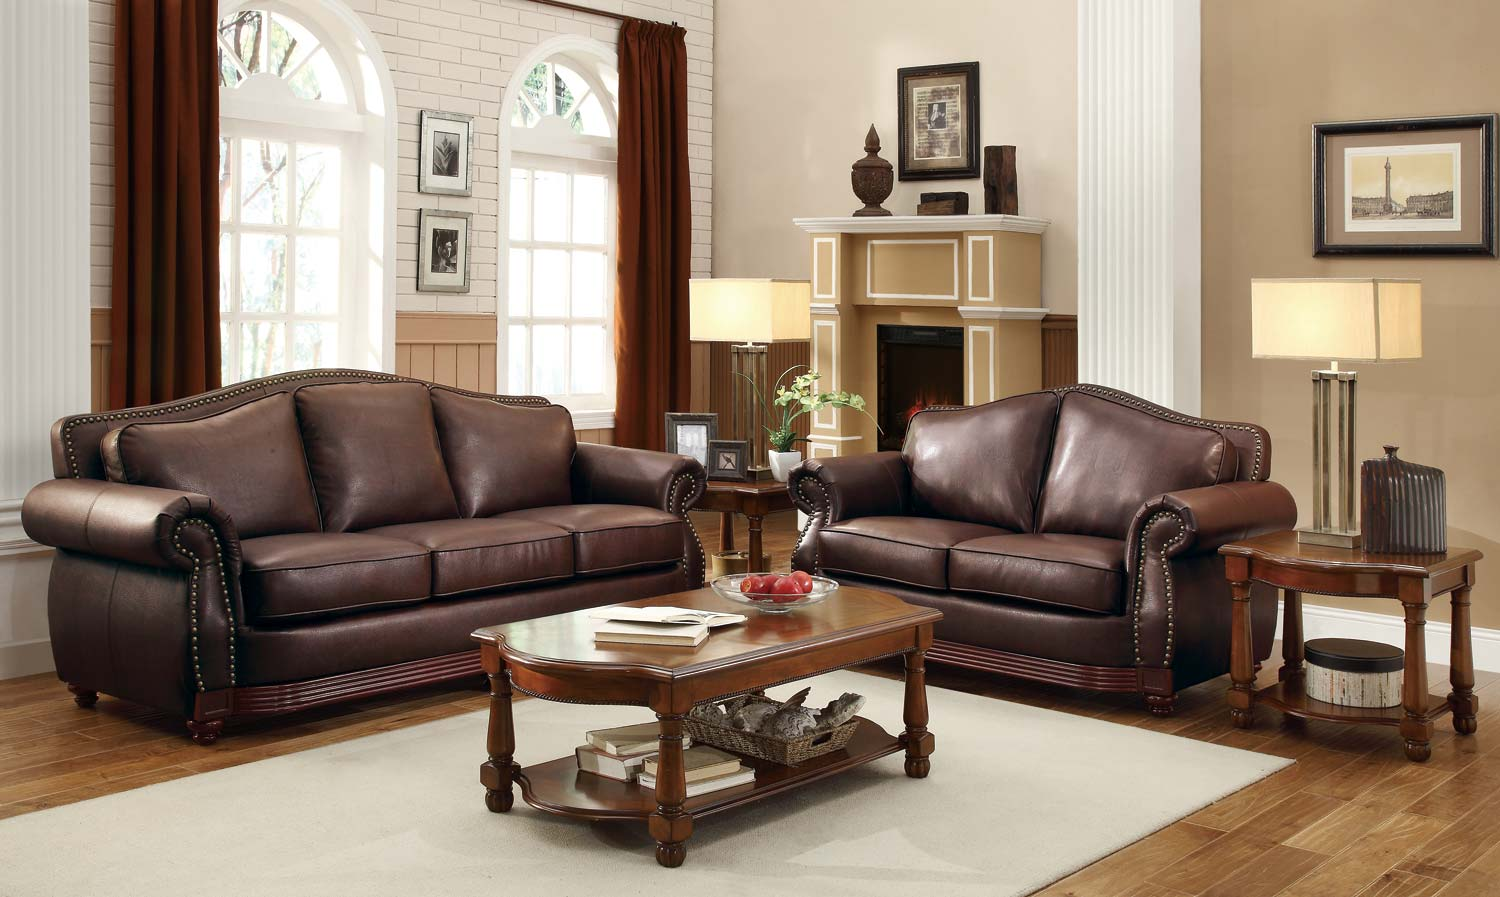 Homelegance midwood bonded leather sofa collection dark for Leather sofa set